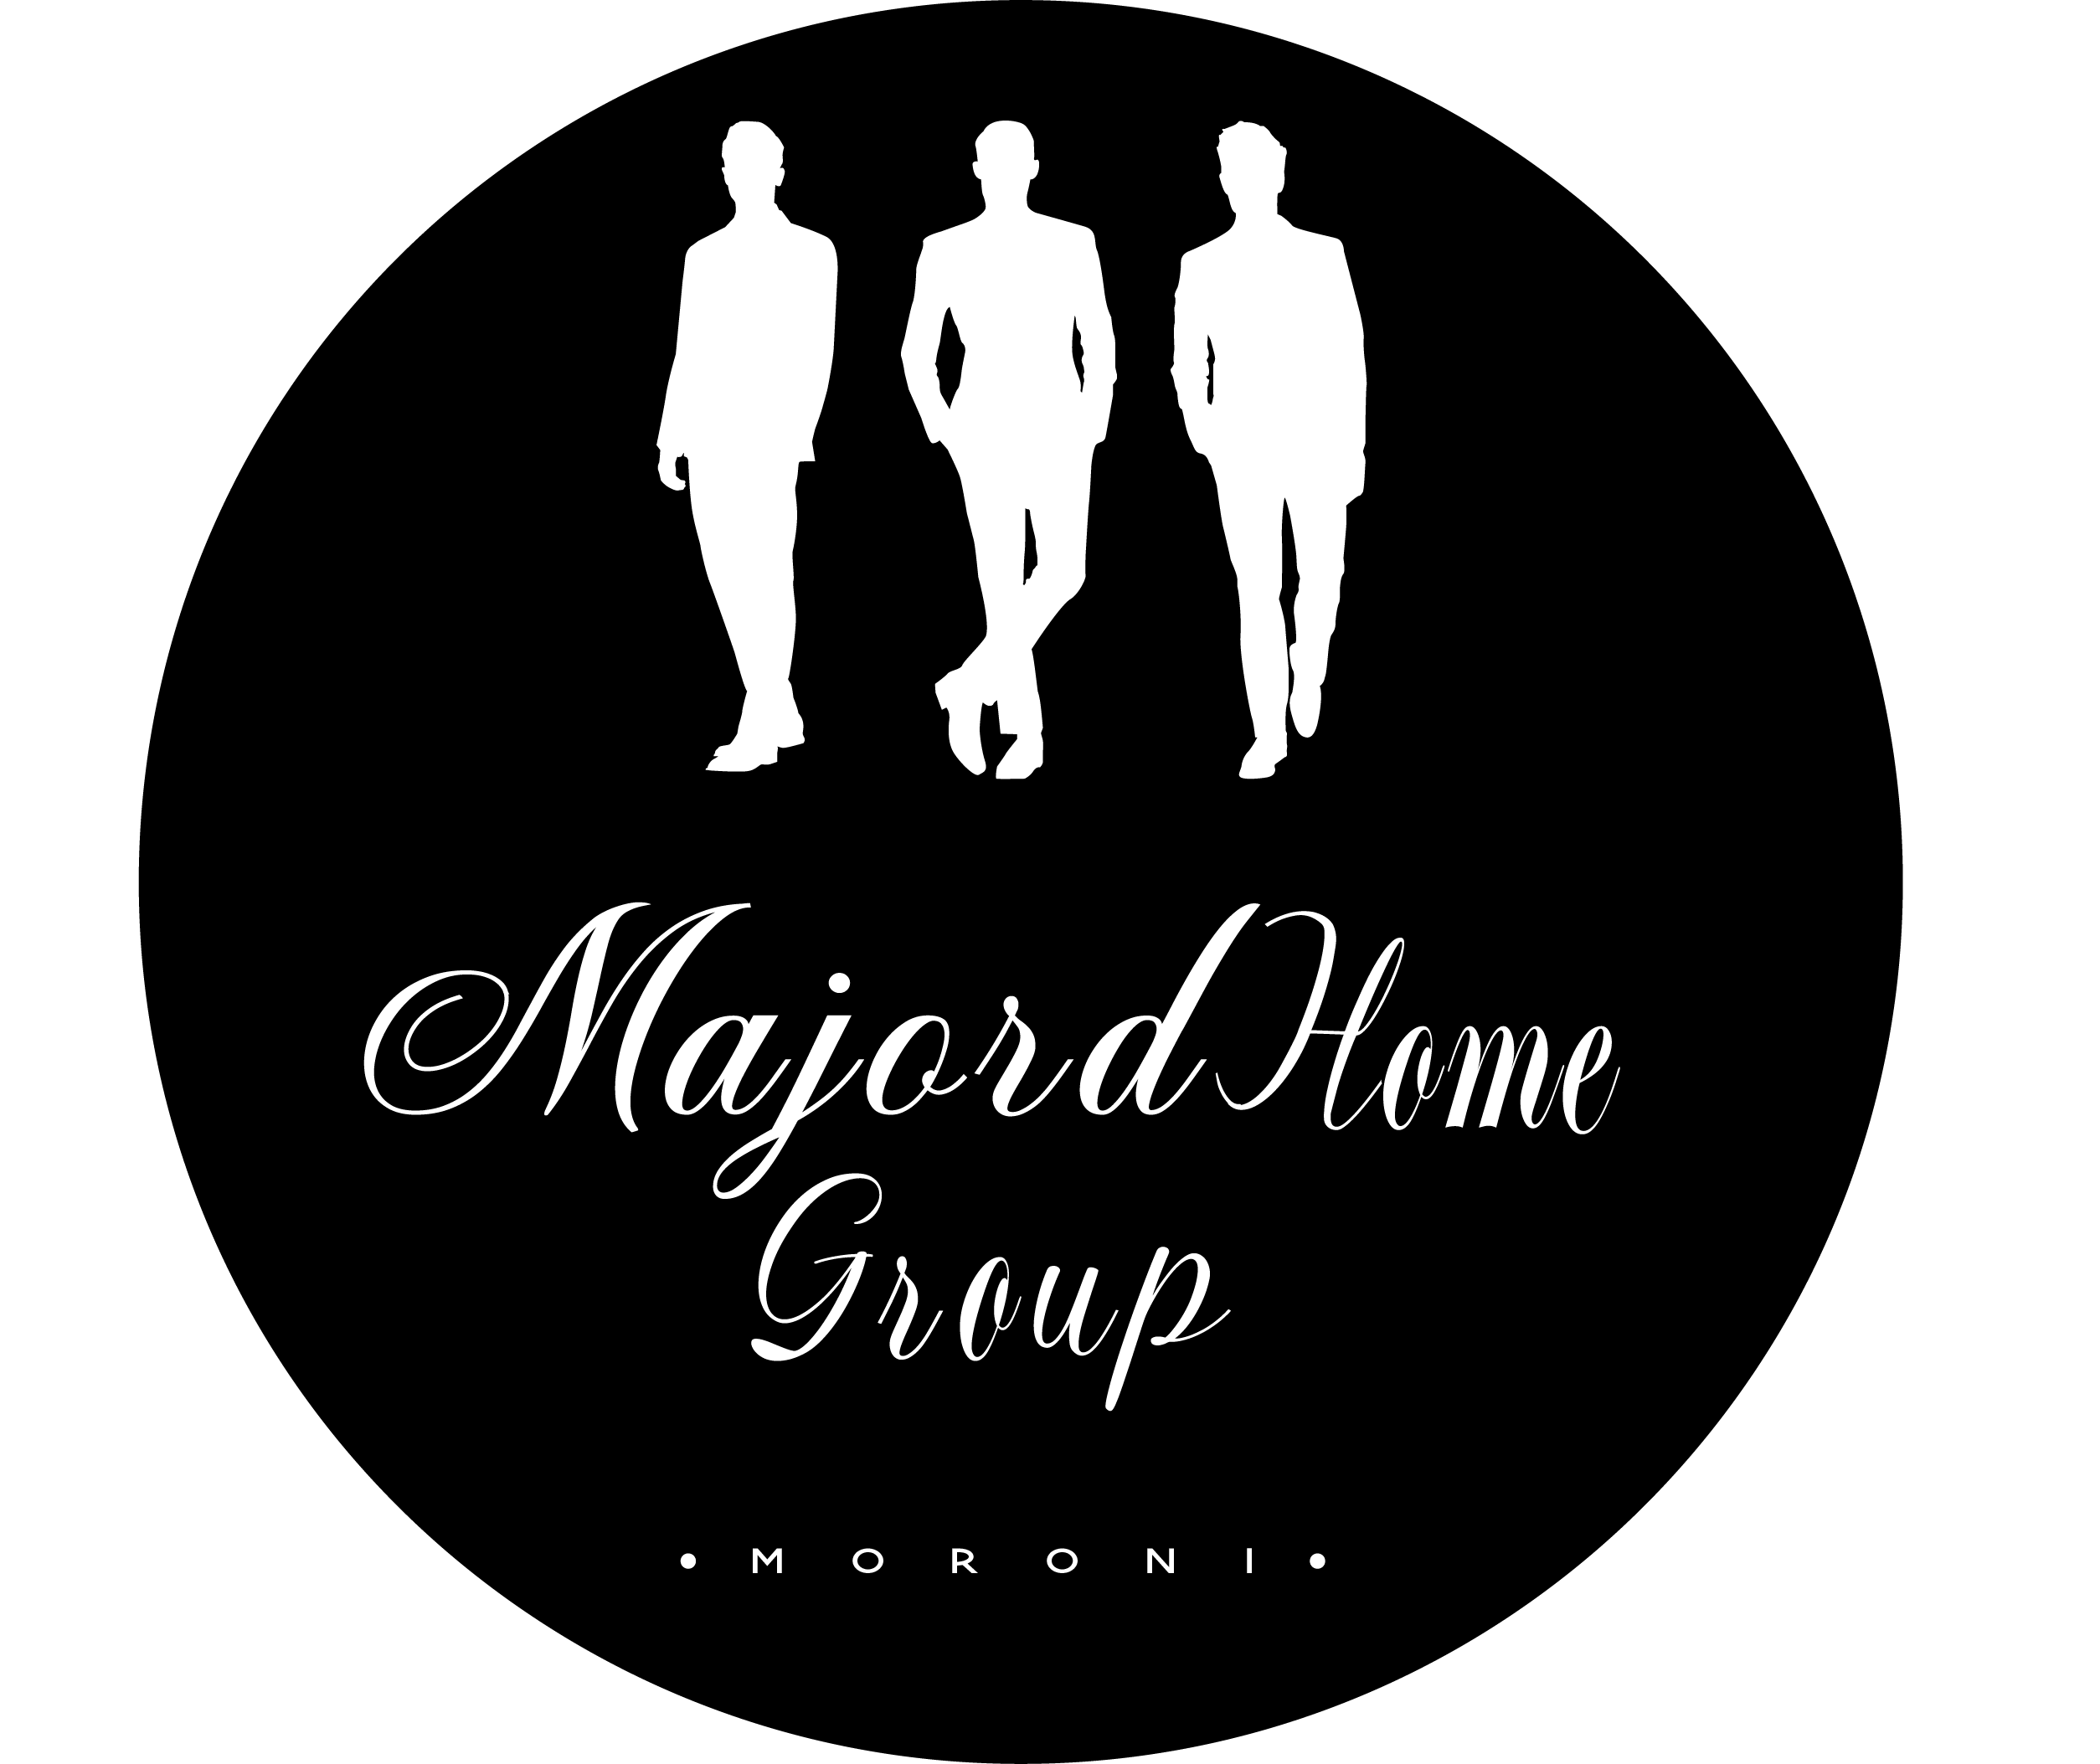 MajordHome Group Company